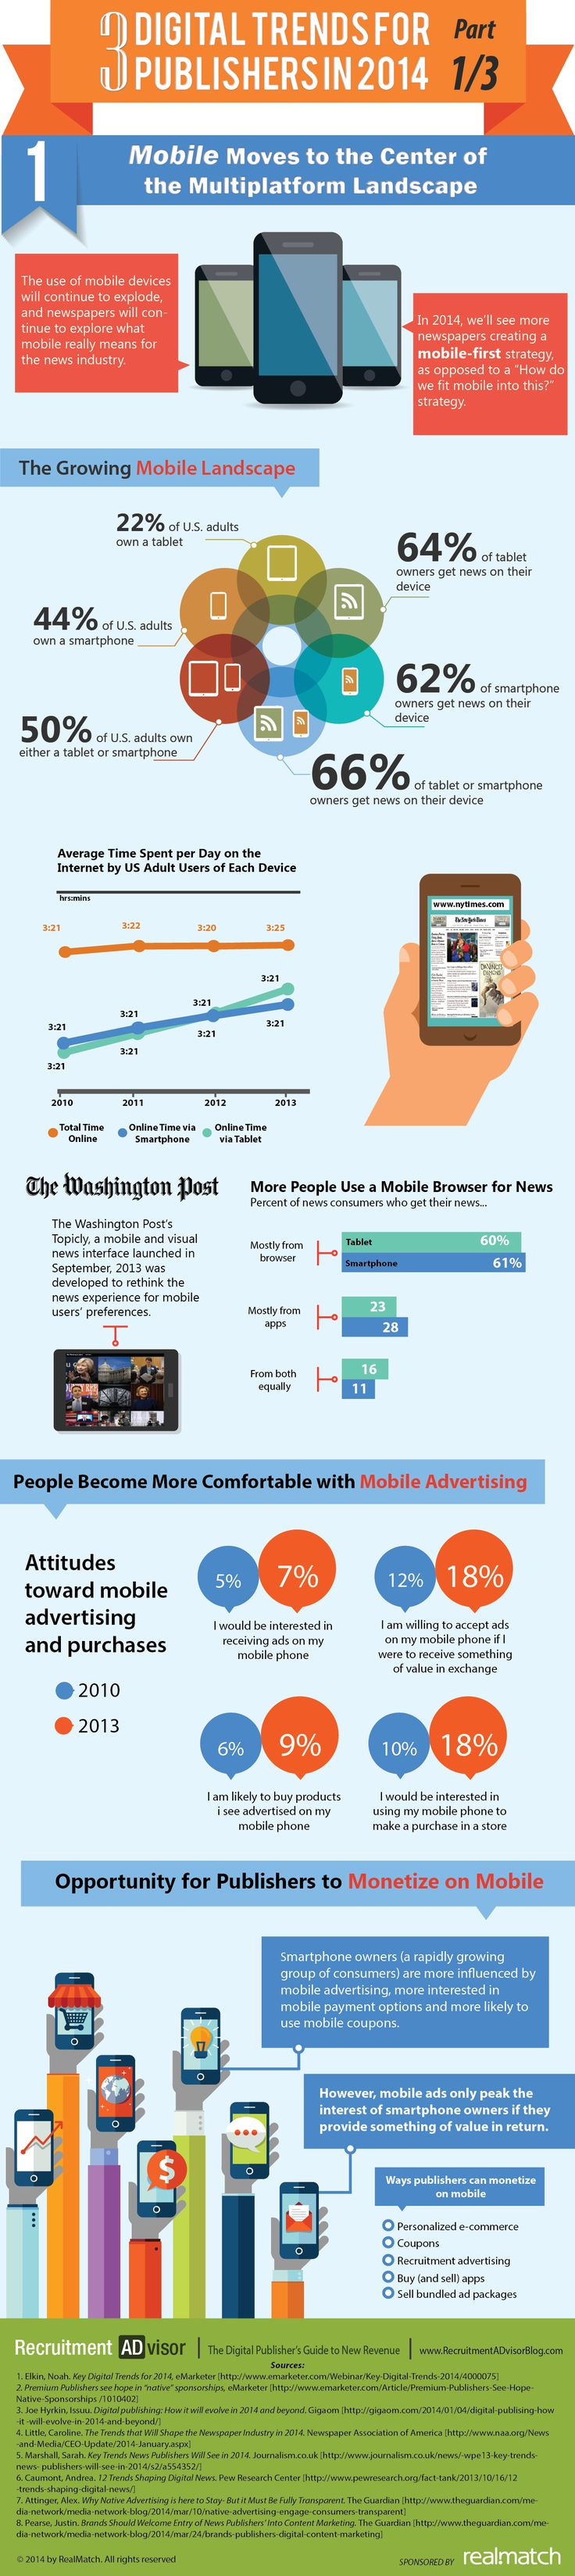 3 Digital Trends for Publishers in 2014 [Infographic] via @to morrow Knight